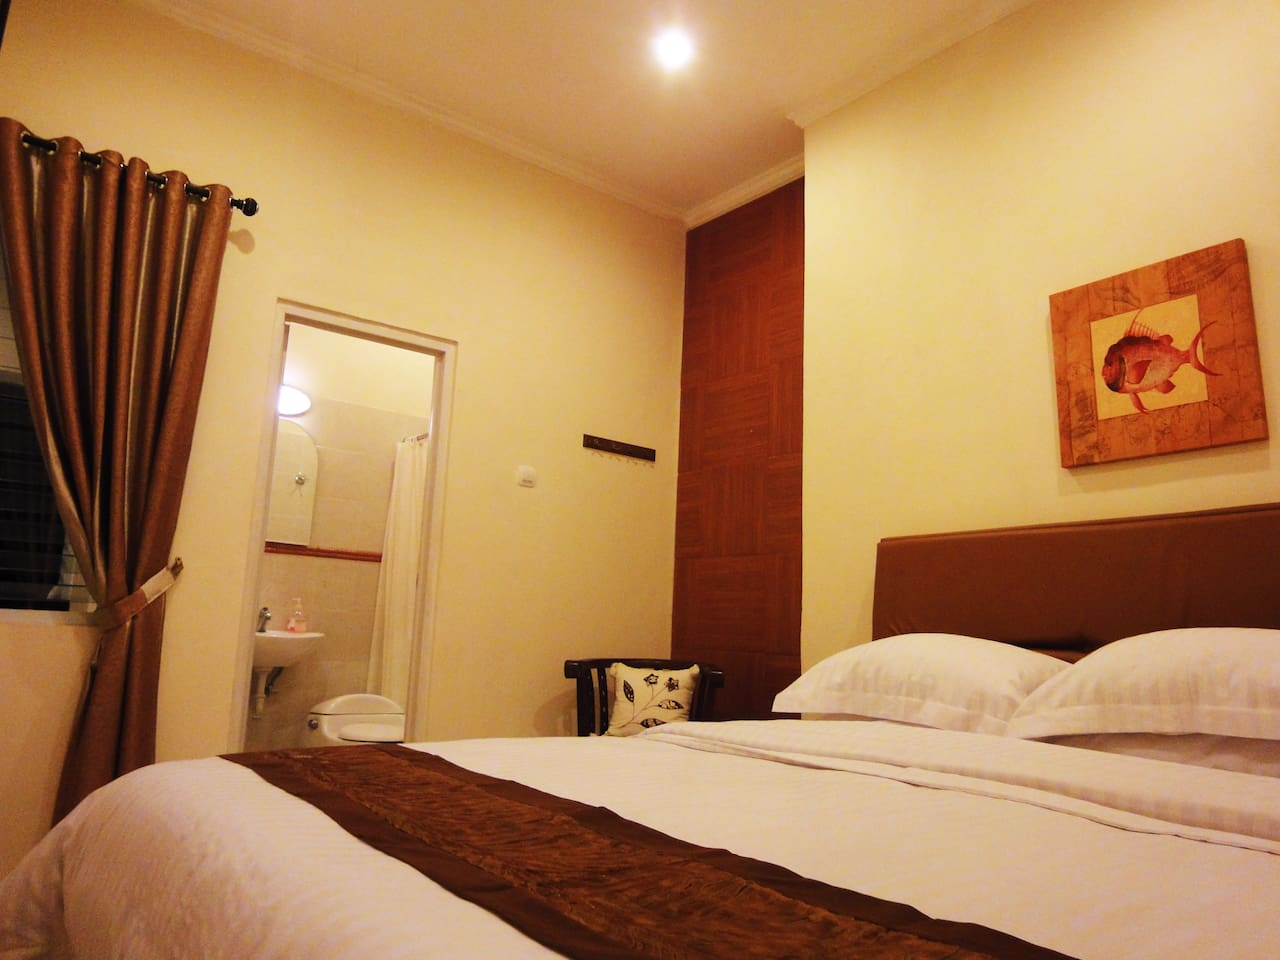 Queen-sized beds and private bathrooms